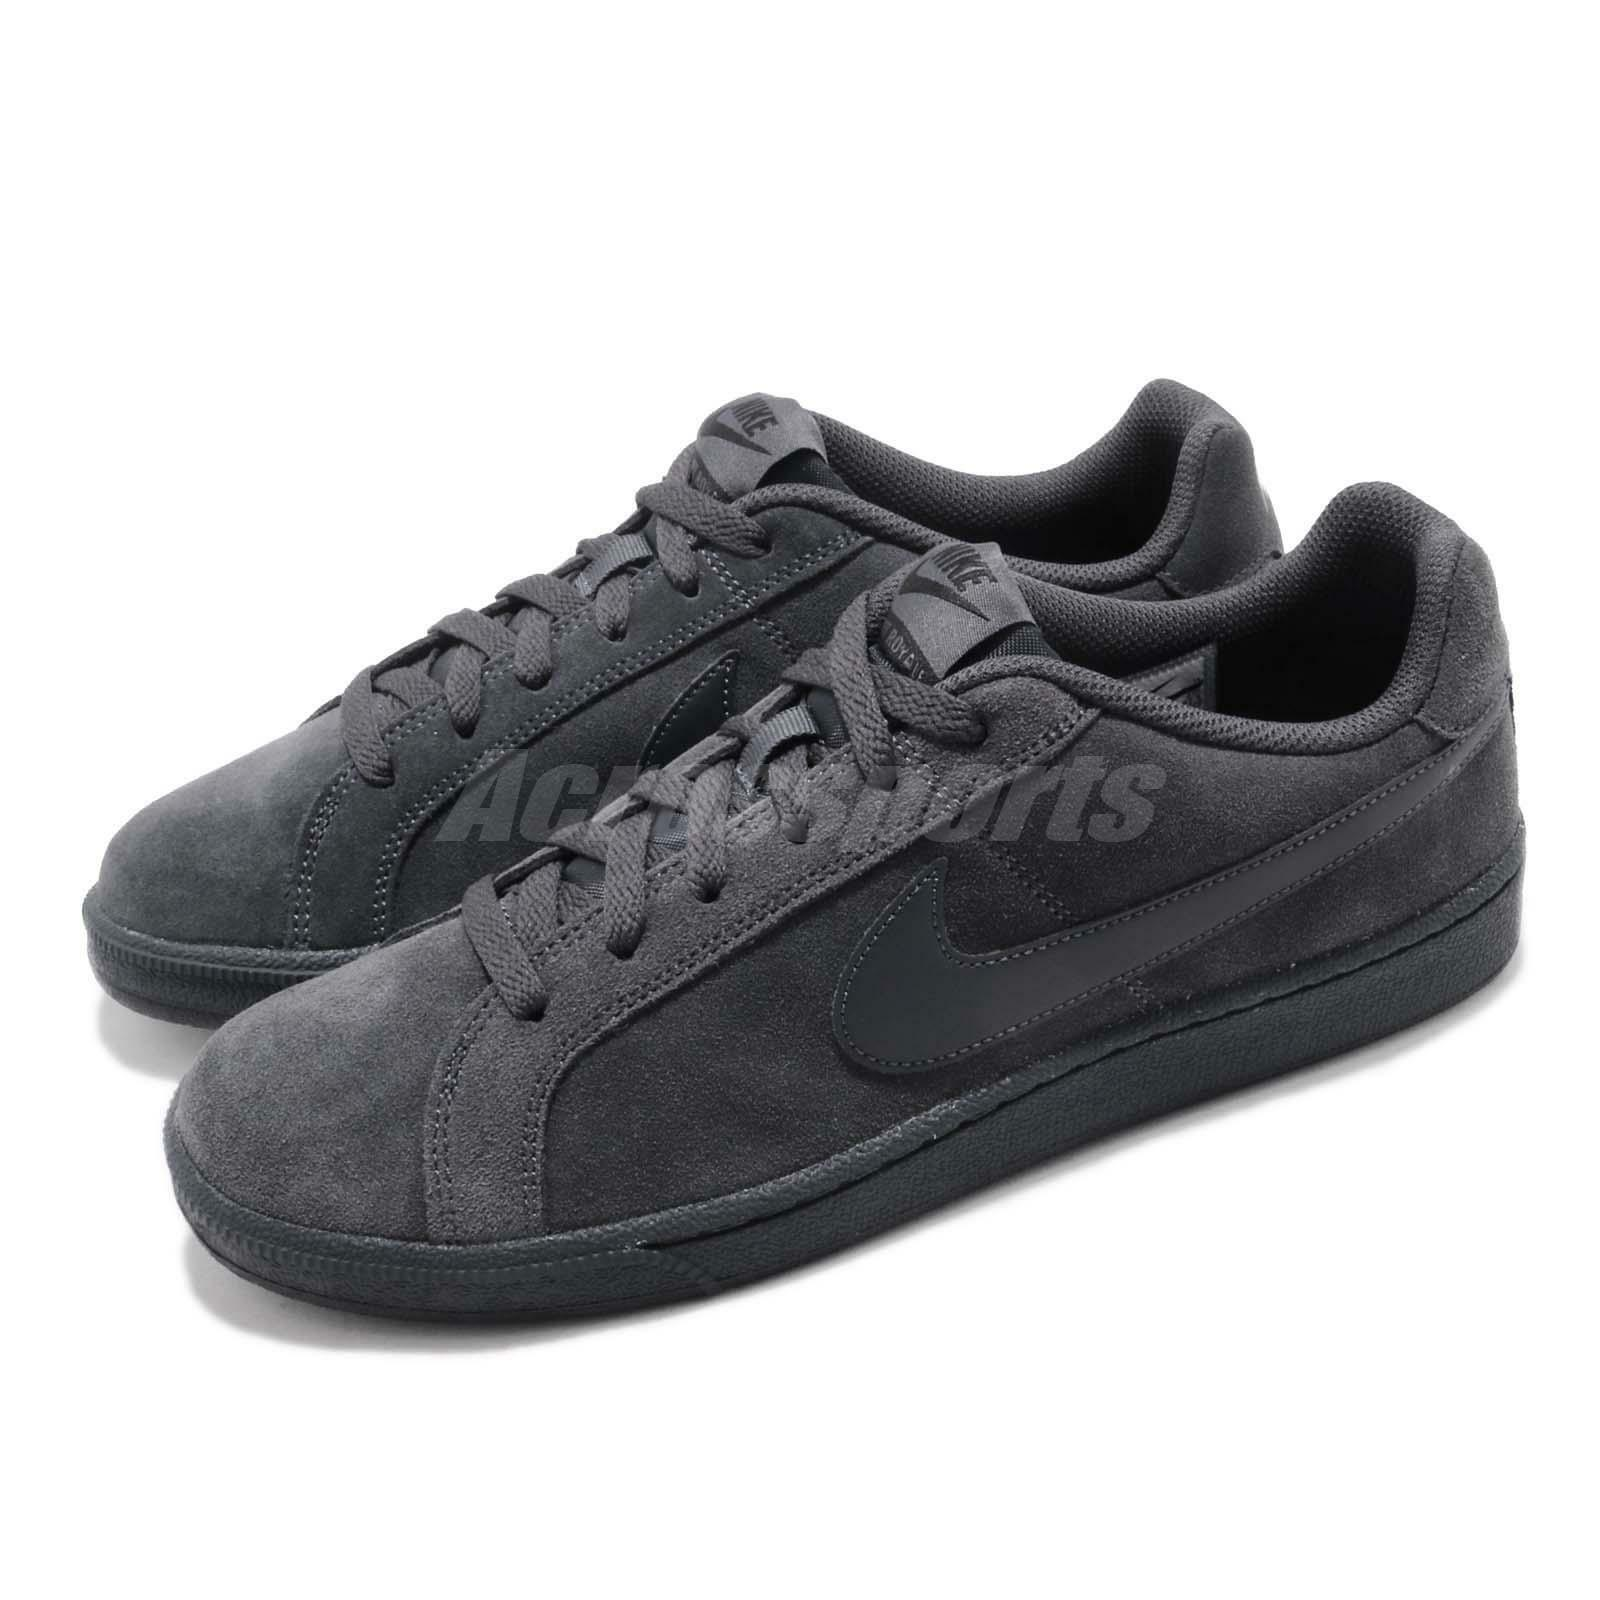 Nike Court Royale Suede Anthracite Black Men Casual shoes Sneakers 819802-012